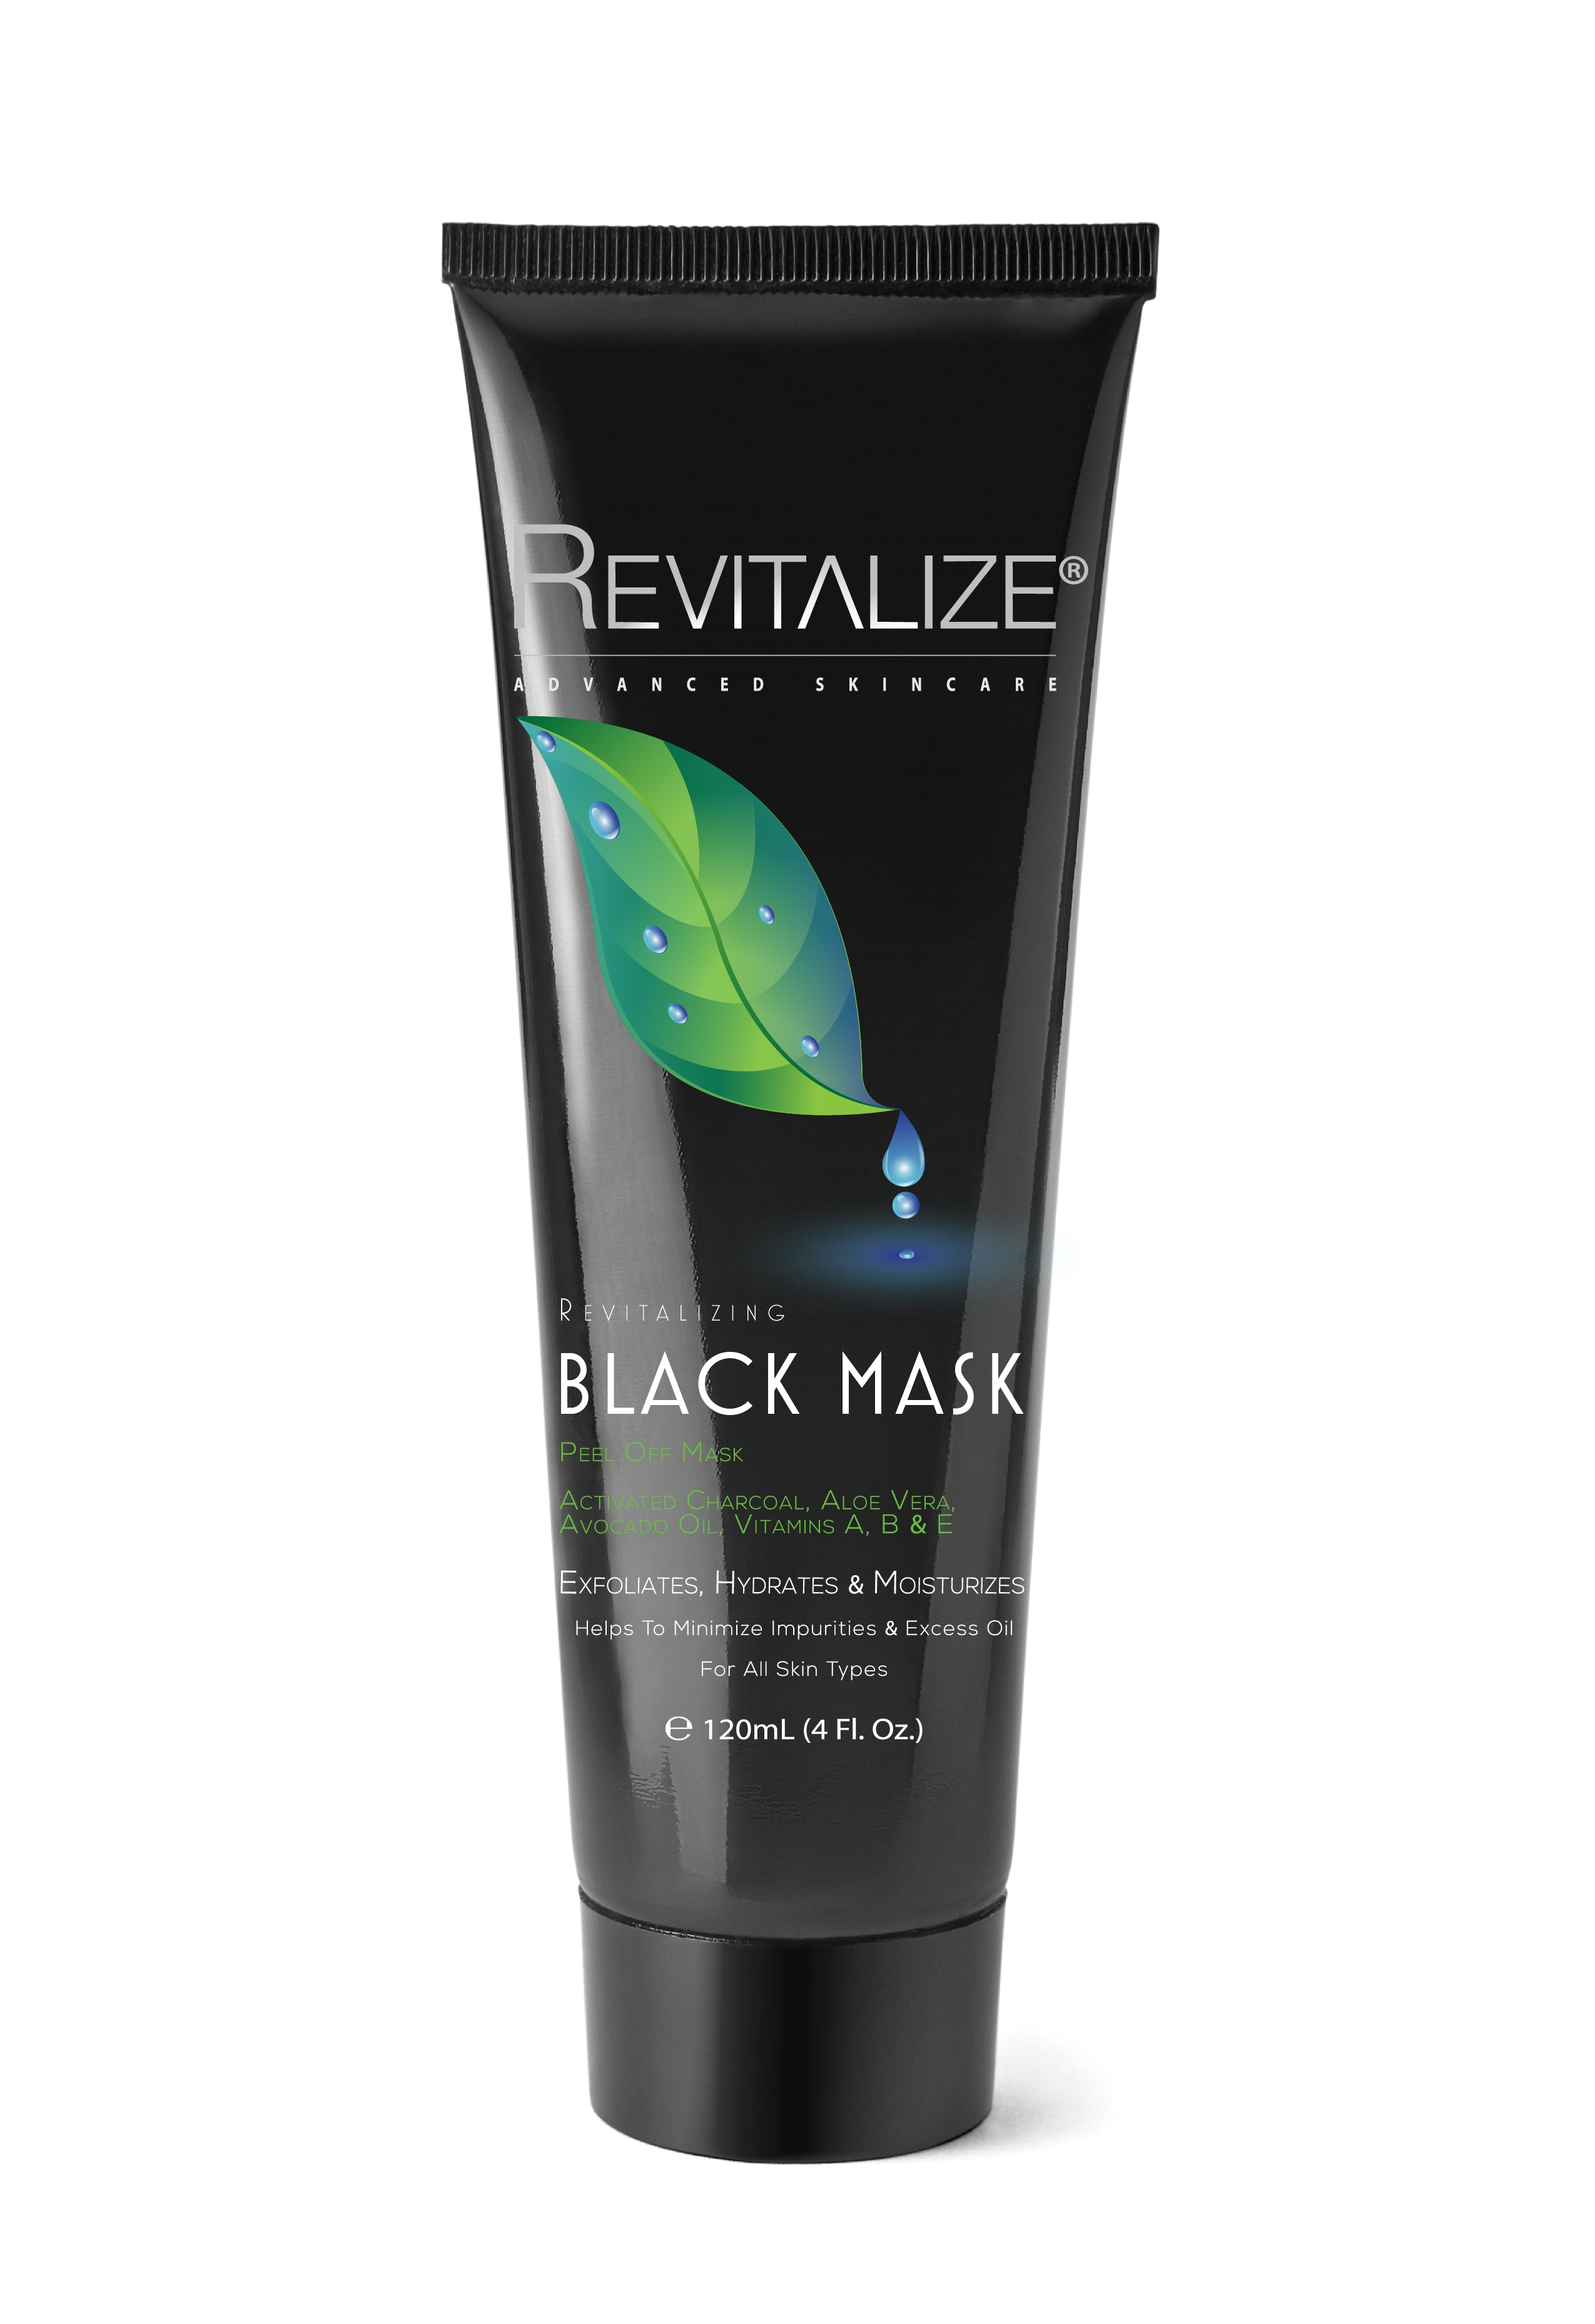 revitalize, blackmask, charcoal, skin, facial, products, oily skin, pore reducer, pores, acne. Revitalizing Black Charcoal Facial Mask makeup toner mac kylie cosmetics facials skincare skin powerful vegan plant botanical herbal natural cleansing activated charcoal exfoliating hydrating moisturizing vitamin vitamins sephora ultabeauty clean clear revitalize products product